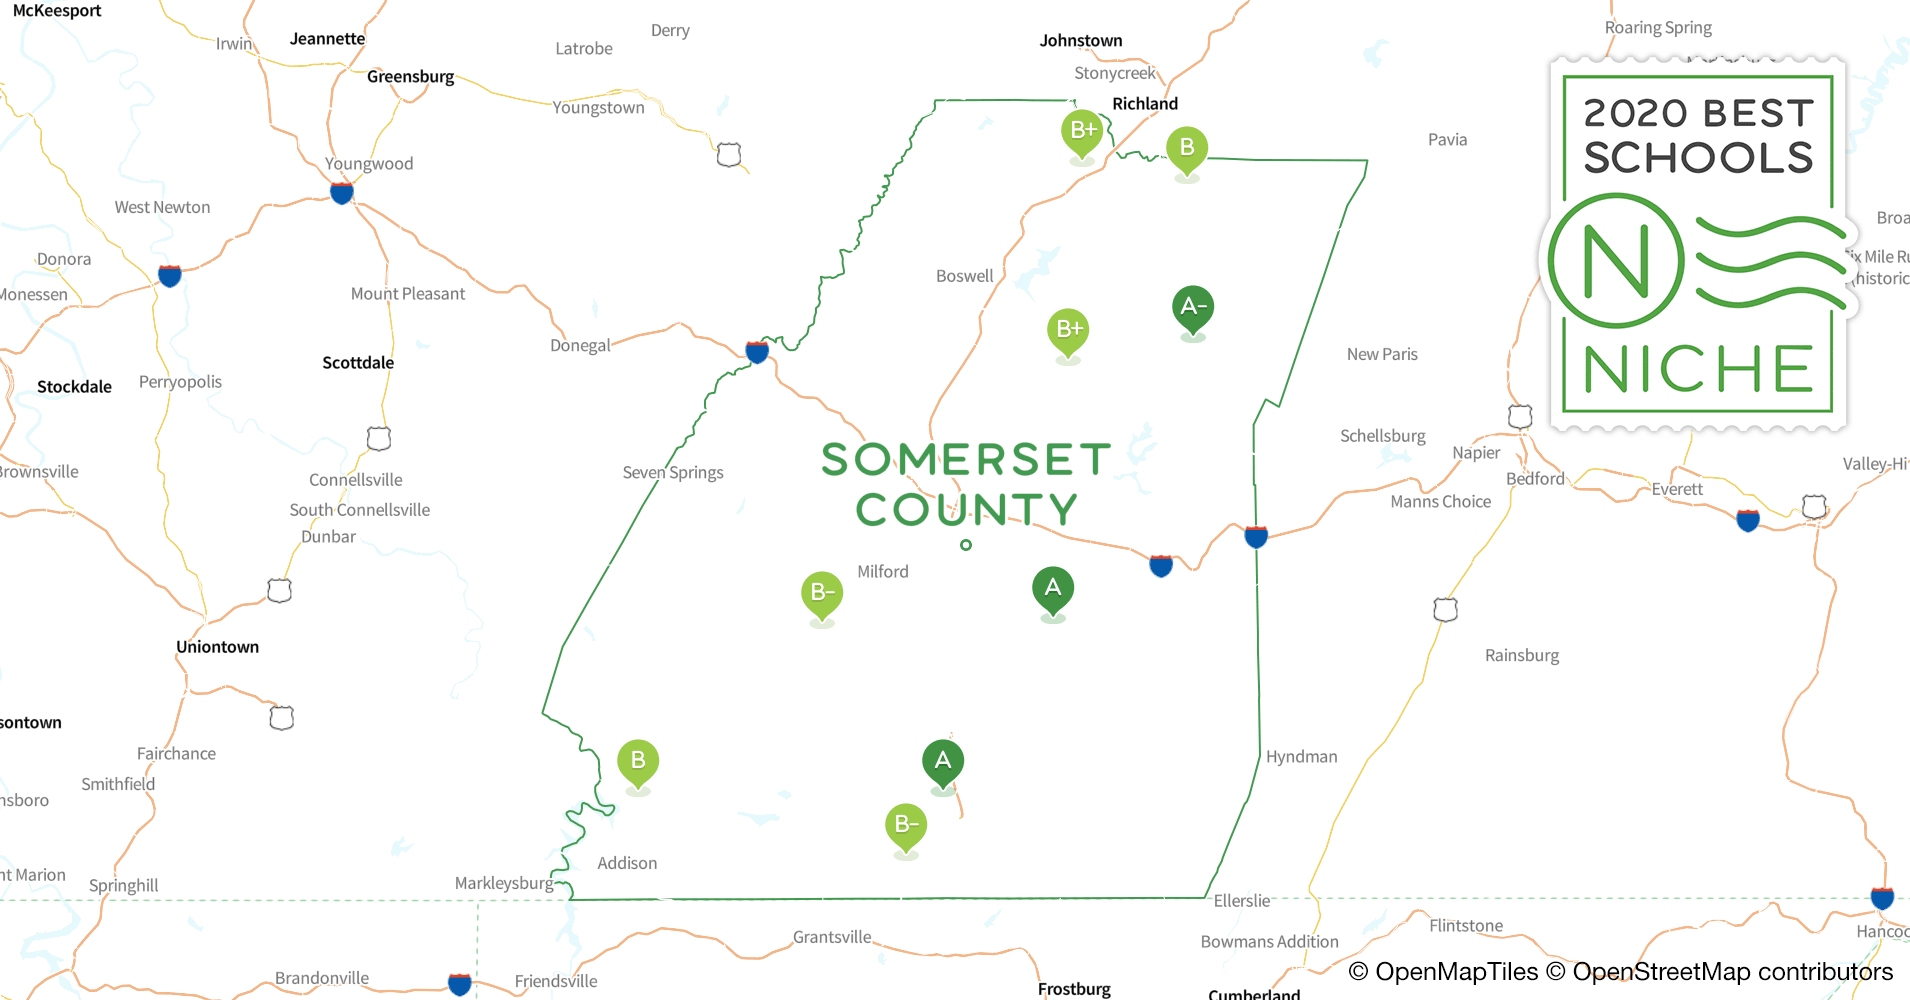 Districts in Somerset County, PA - Niche on maps of warren pa, maps of wellsboro pa, maps of pleasantville pa, maps of quakertown pa, maps of oxford pa, maps of milford township pa, maps of tamaqua pa, maps of vestaburg pa, maps of chambersburg pa, maps of souderton pa, maps of lancaster pa, map of duncansville pa, maps of hershey pa, maps of new castle pa, maps of butler pa, map of towanda pa, maps of huntingdon pa, maps of doylestown pa, maps of bradford pa, street map of ebensburg pa,